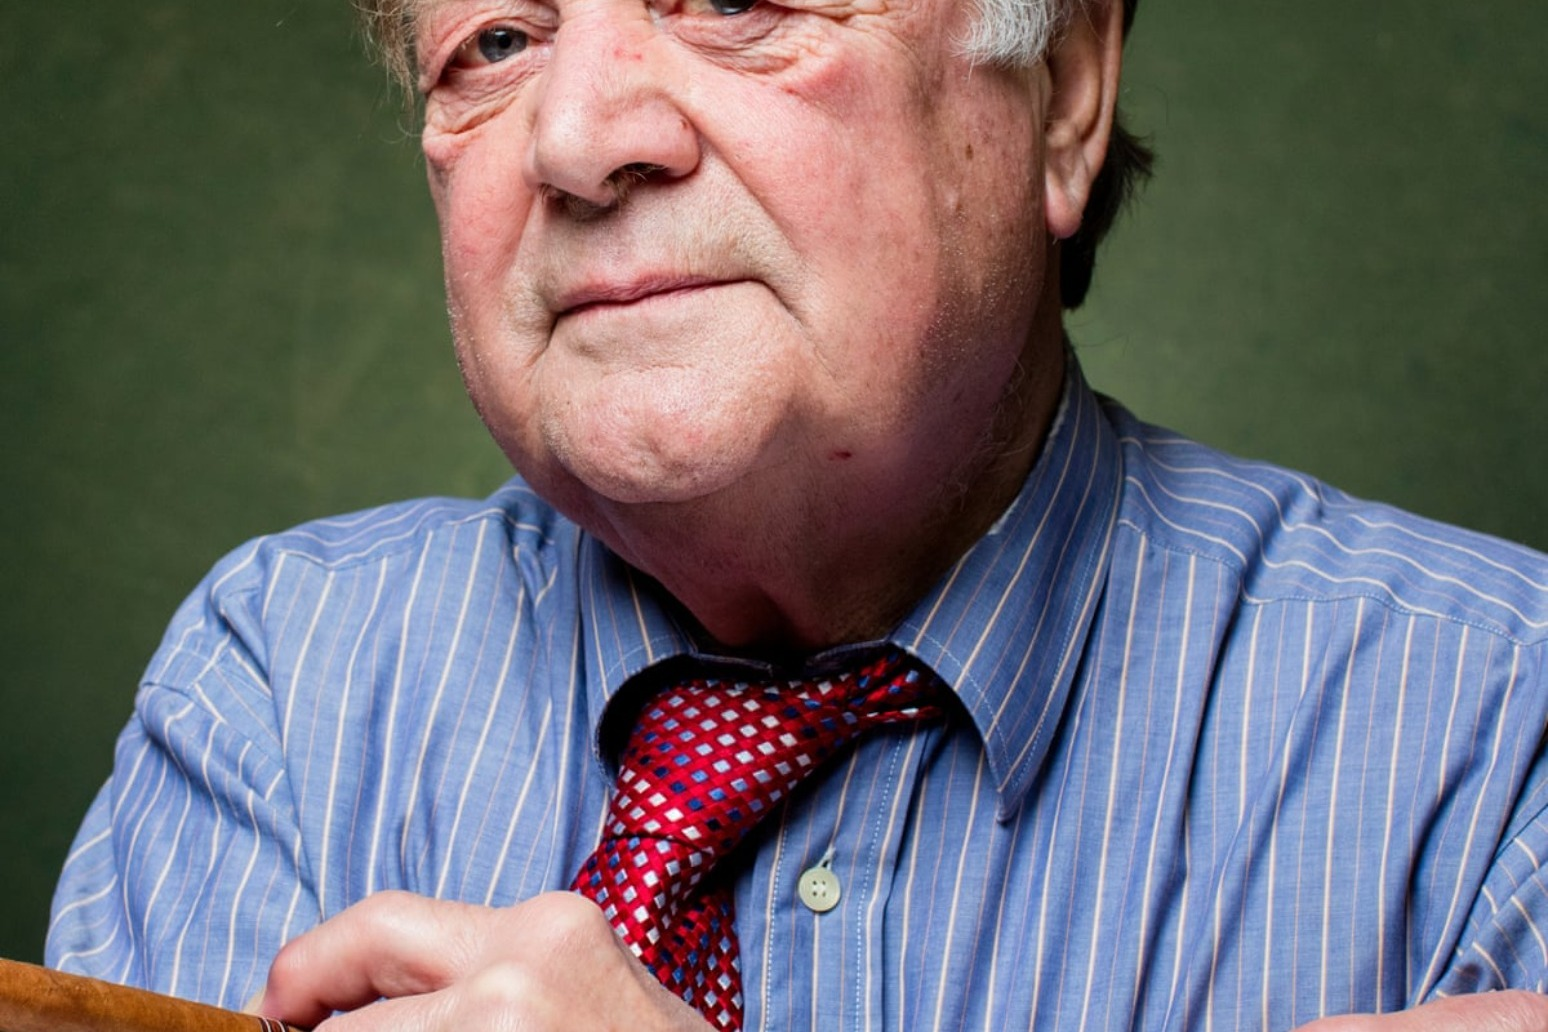 Ken Clarke tells Sunak to consider tax hikes to repair finances from Covid.